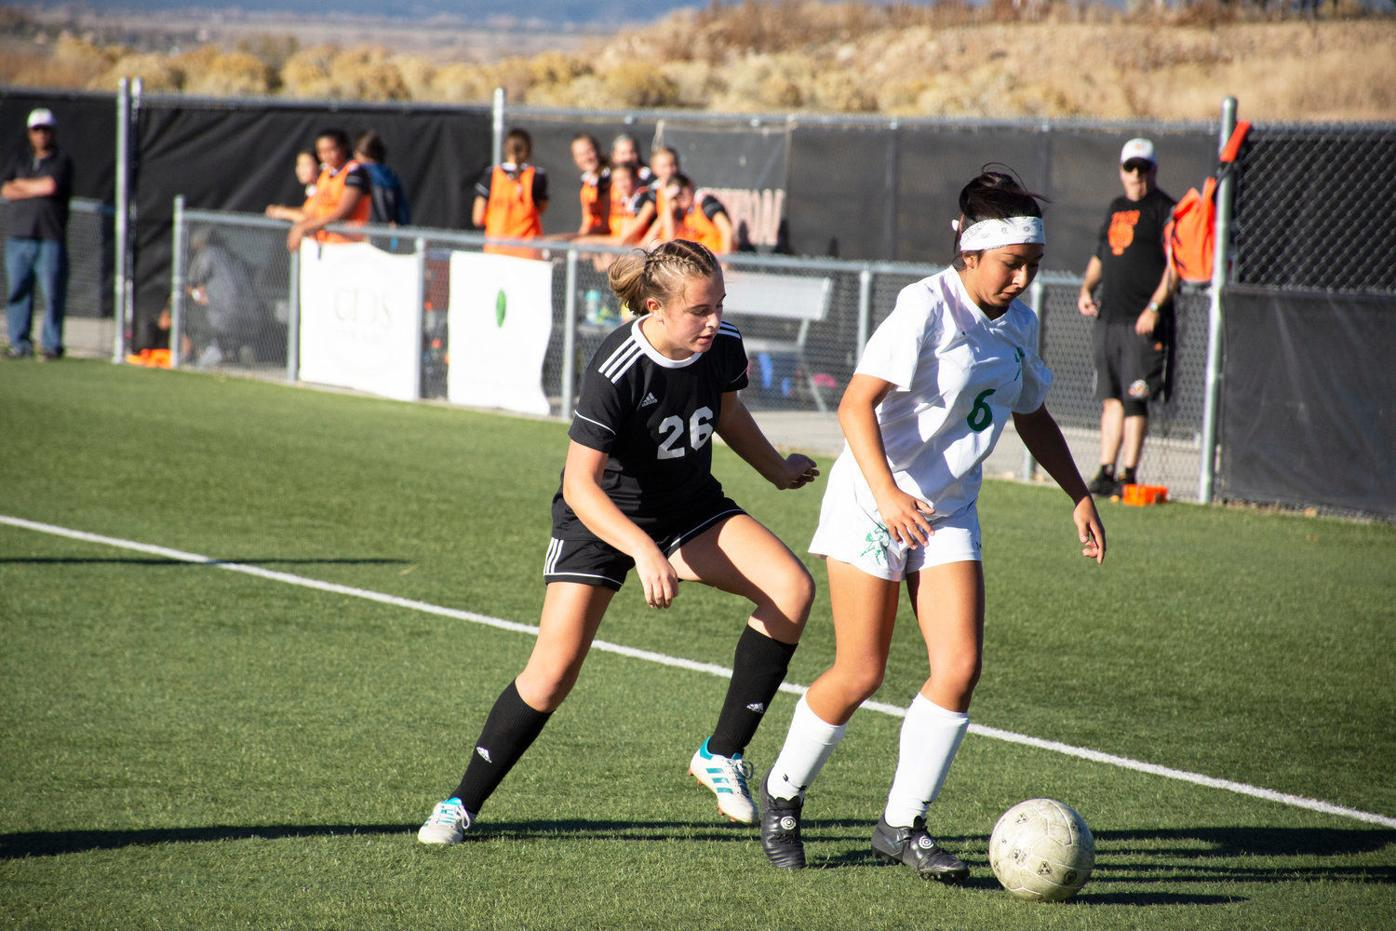 Taos outlasts physical Moriarty squad in final home game